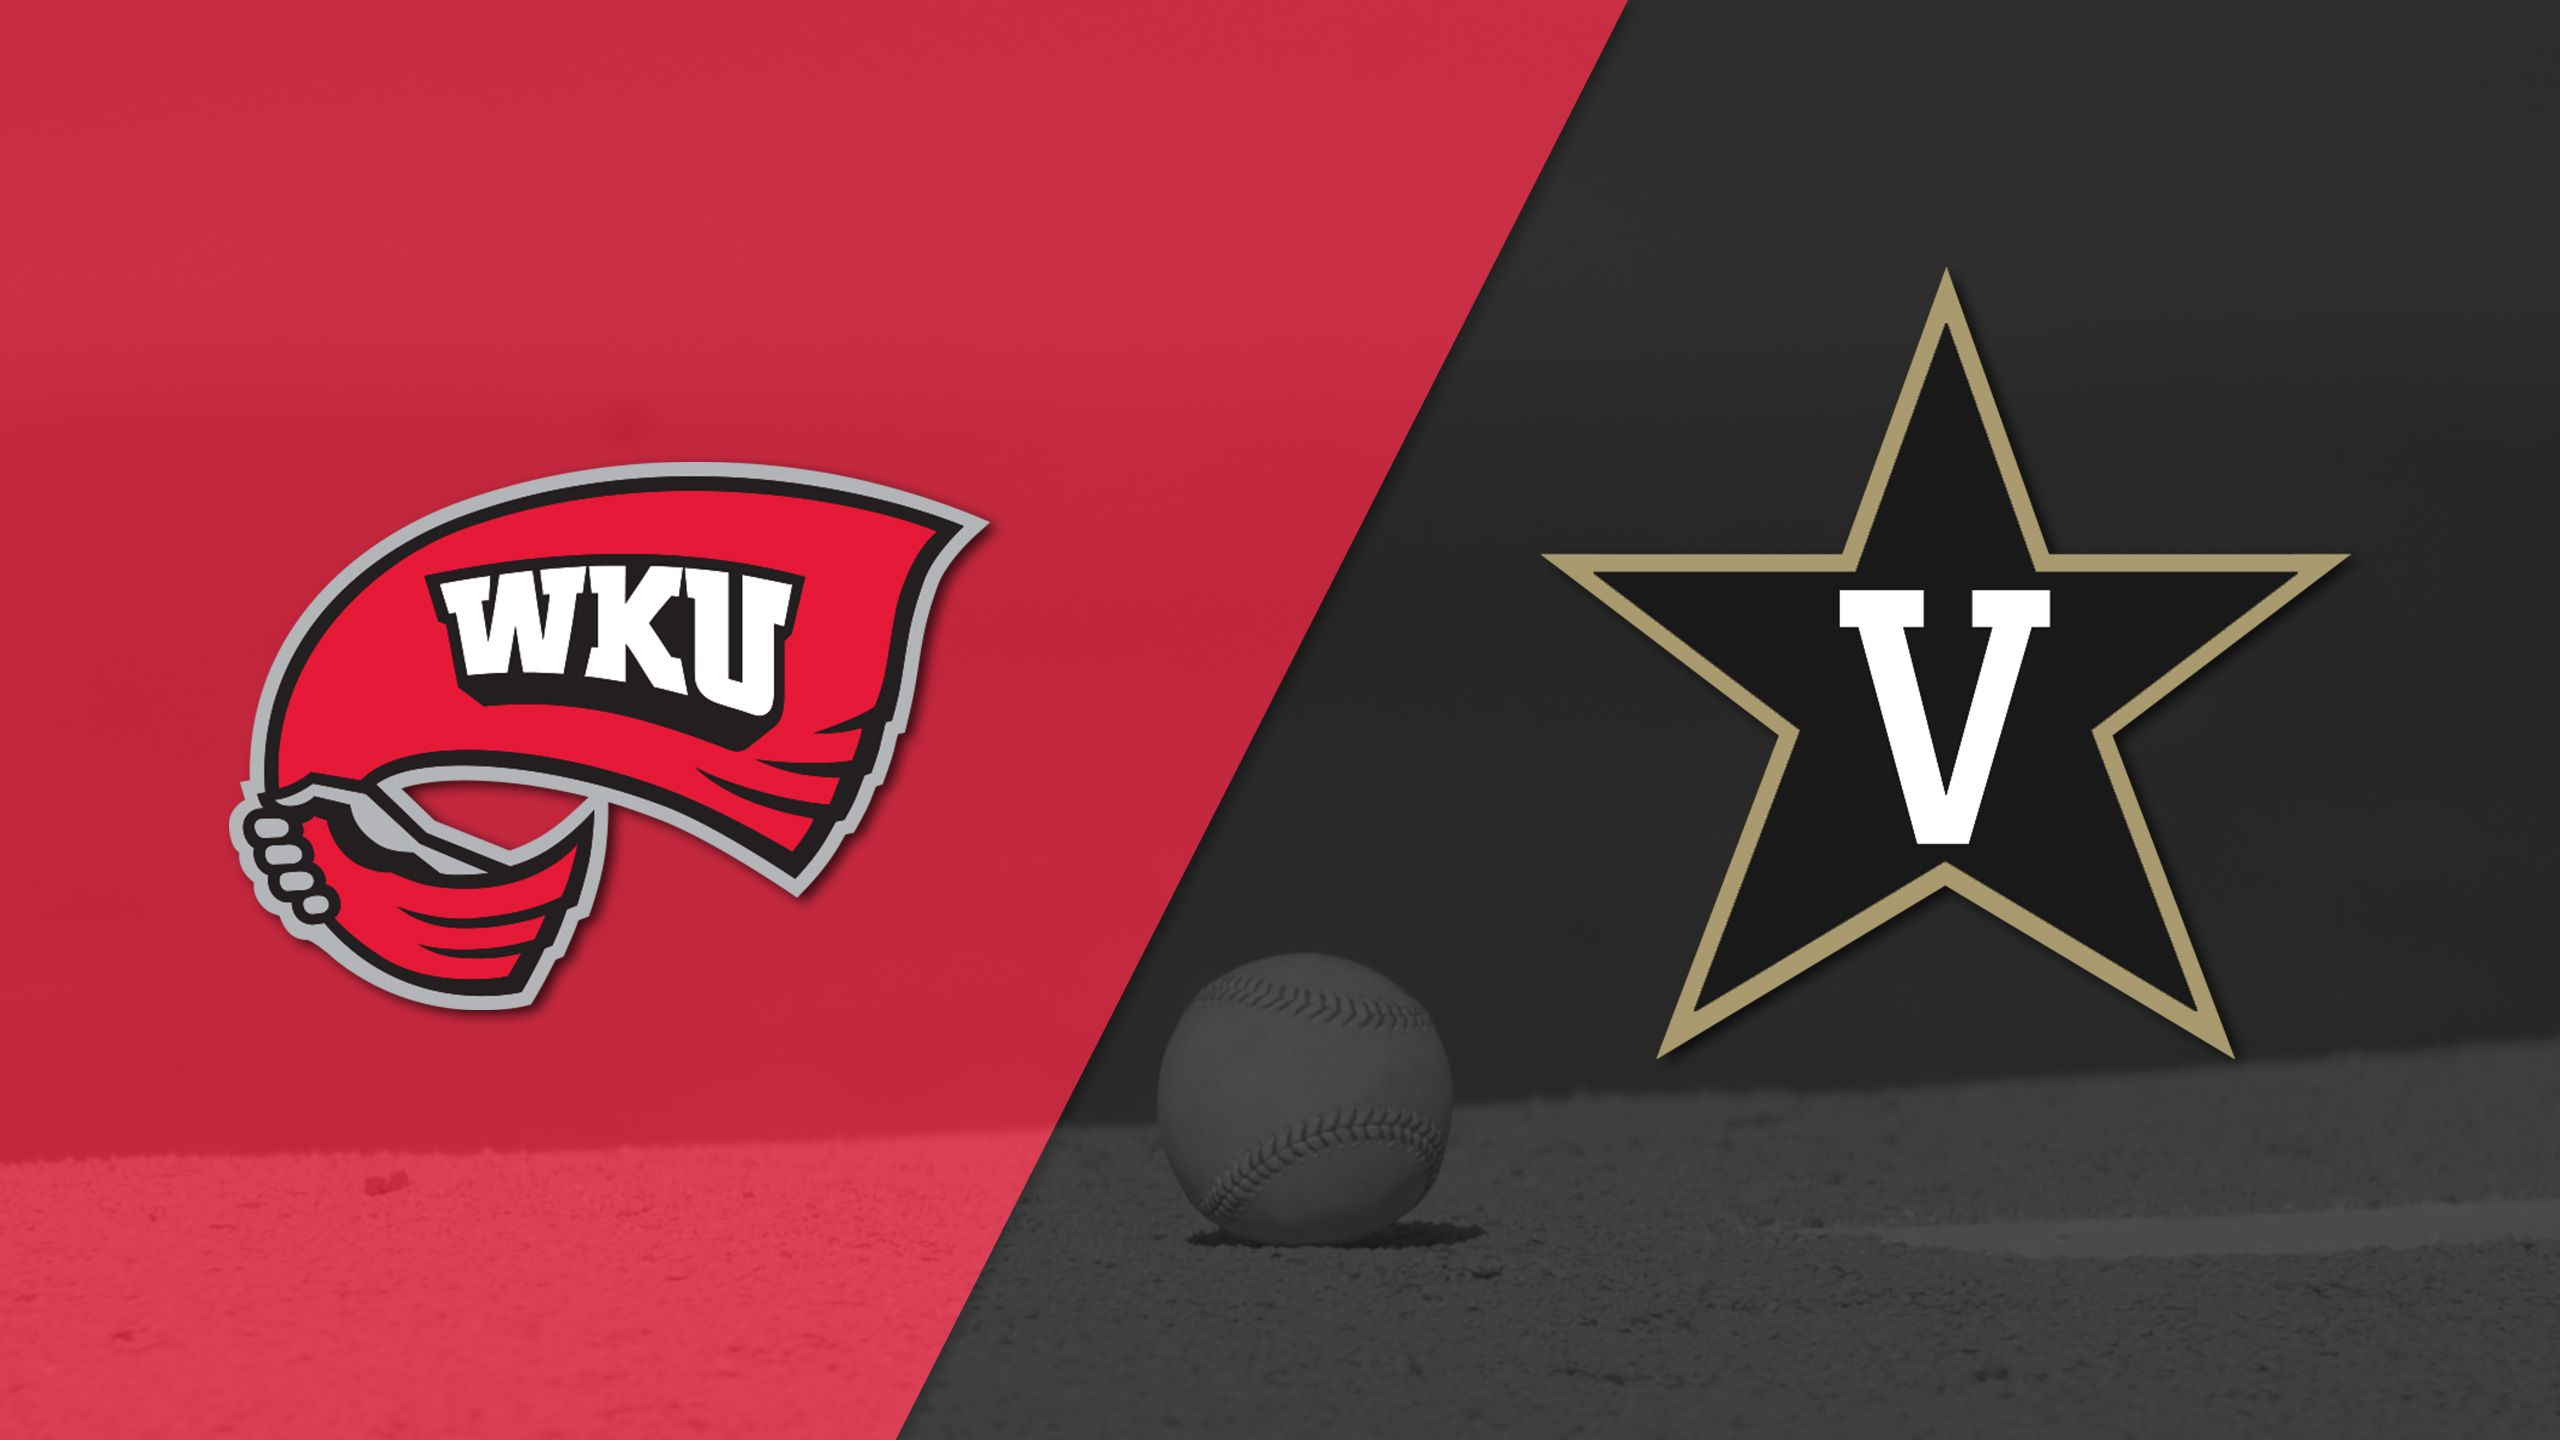 Western Kentucky vs. #23 Vanderbilt (Baseball)